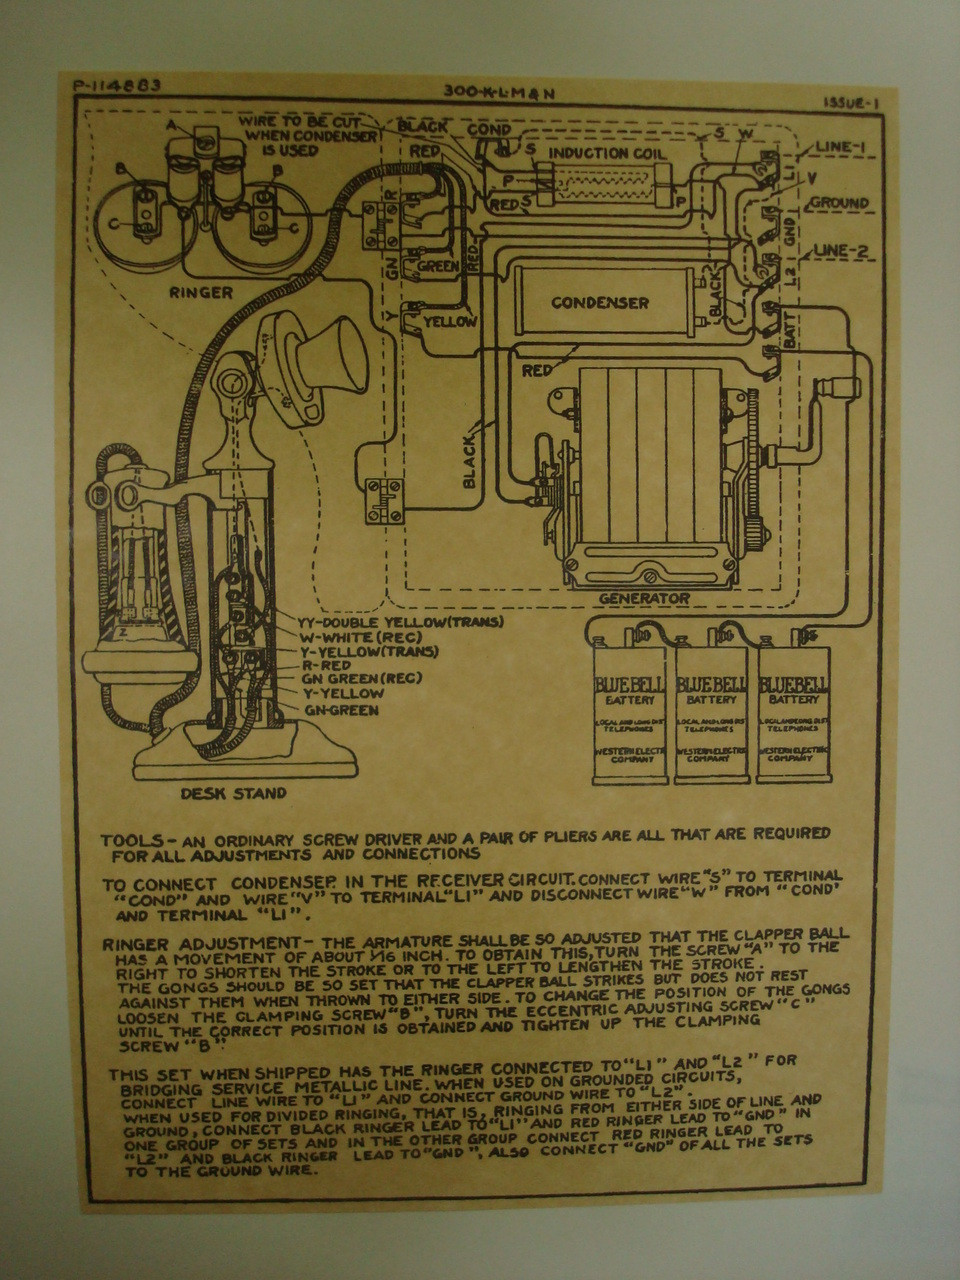 mallory mag o wiring diagram mallory parts catalog wiring mallory ignition wiring diagram magneto mallory hyfire ignition wiring diagram